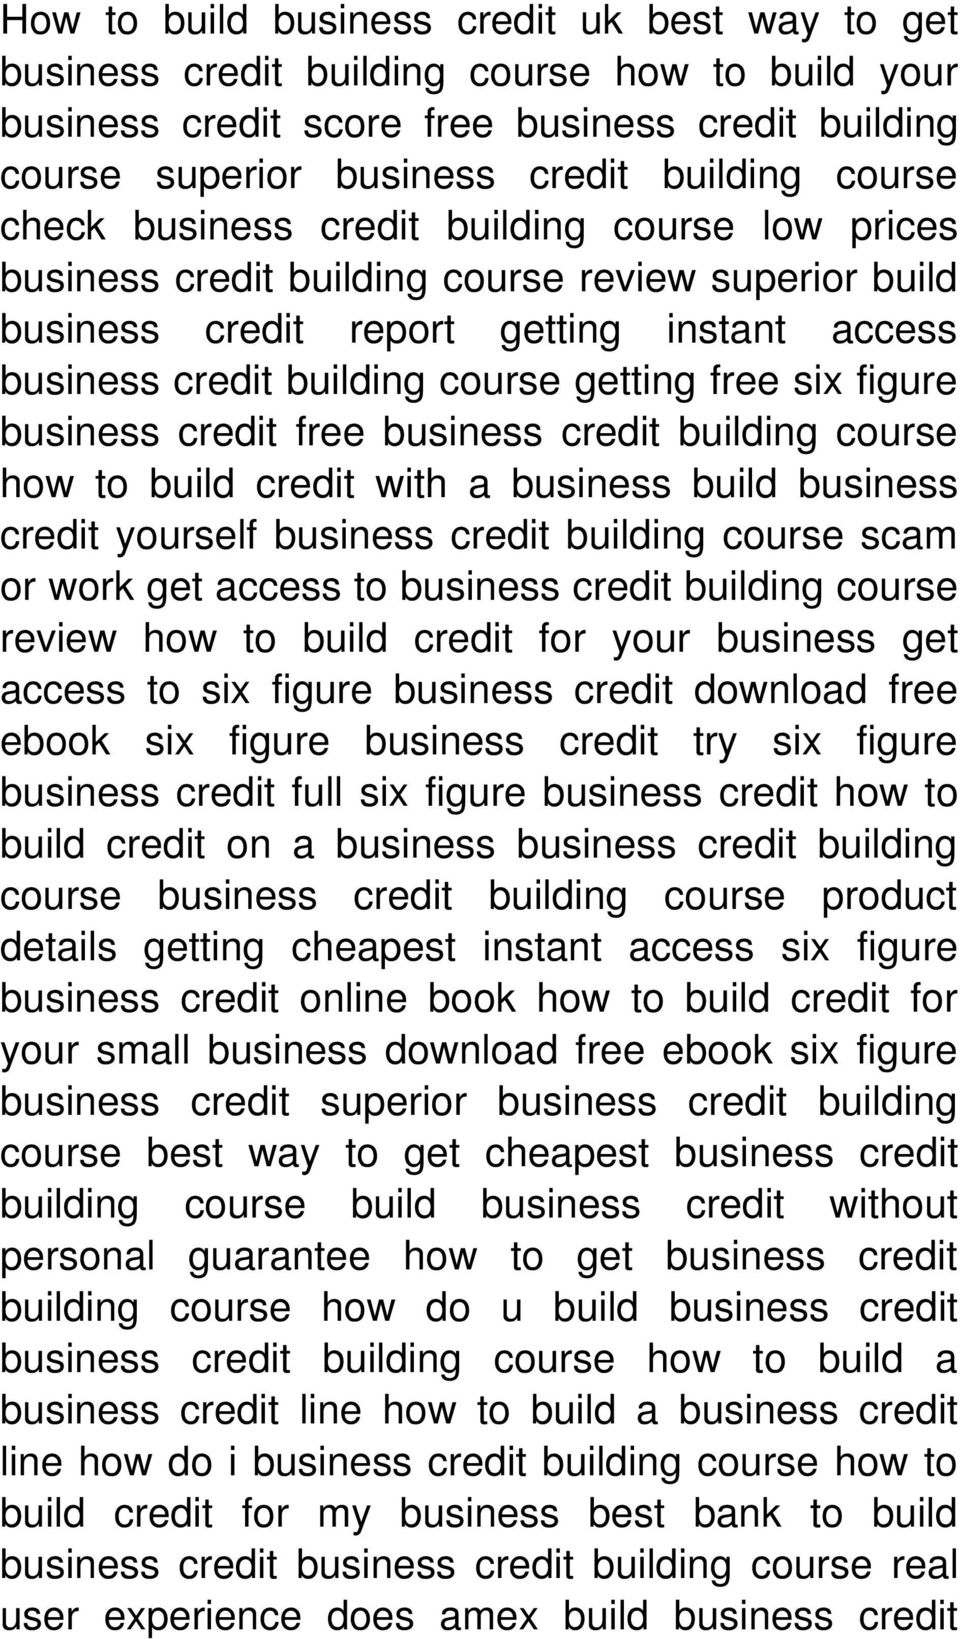 figure business credit free business credit building course how to build credit with a business build business credit yourself business credit building course scam or work get access to business